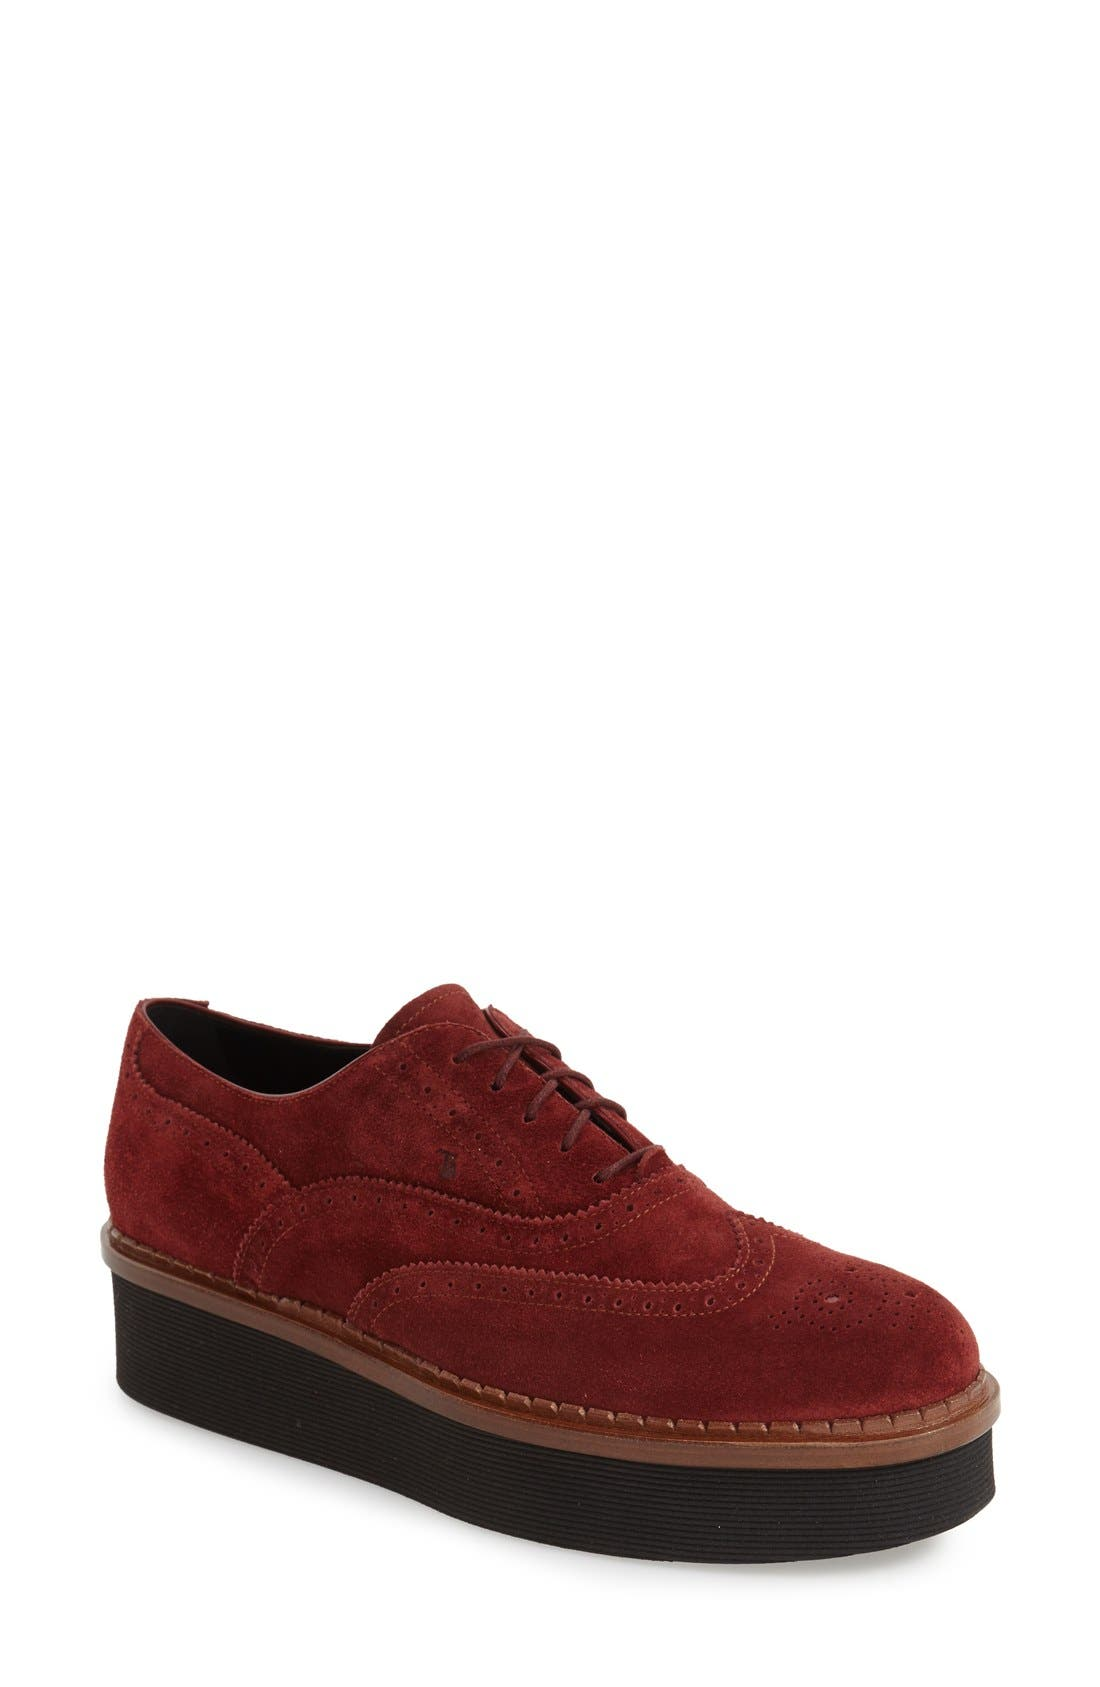 Main Image - Tod's 'Lightsole' Creeper Wingtip Oxford (Women) (Nordstrom Exclusive)